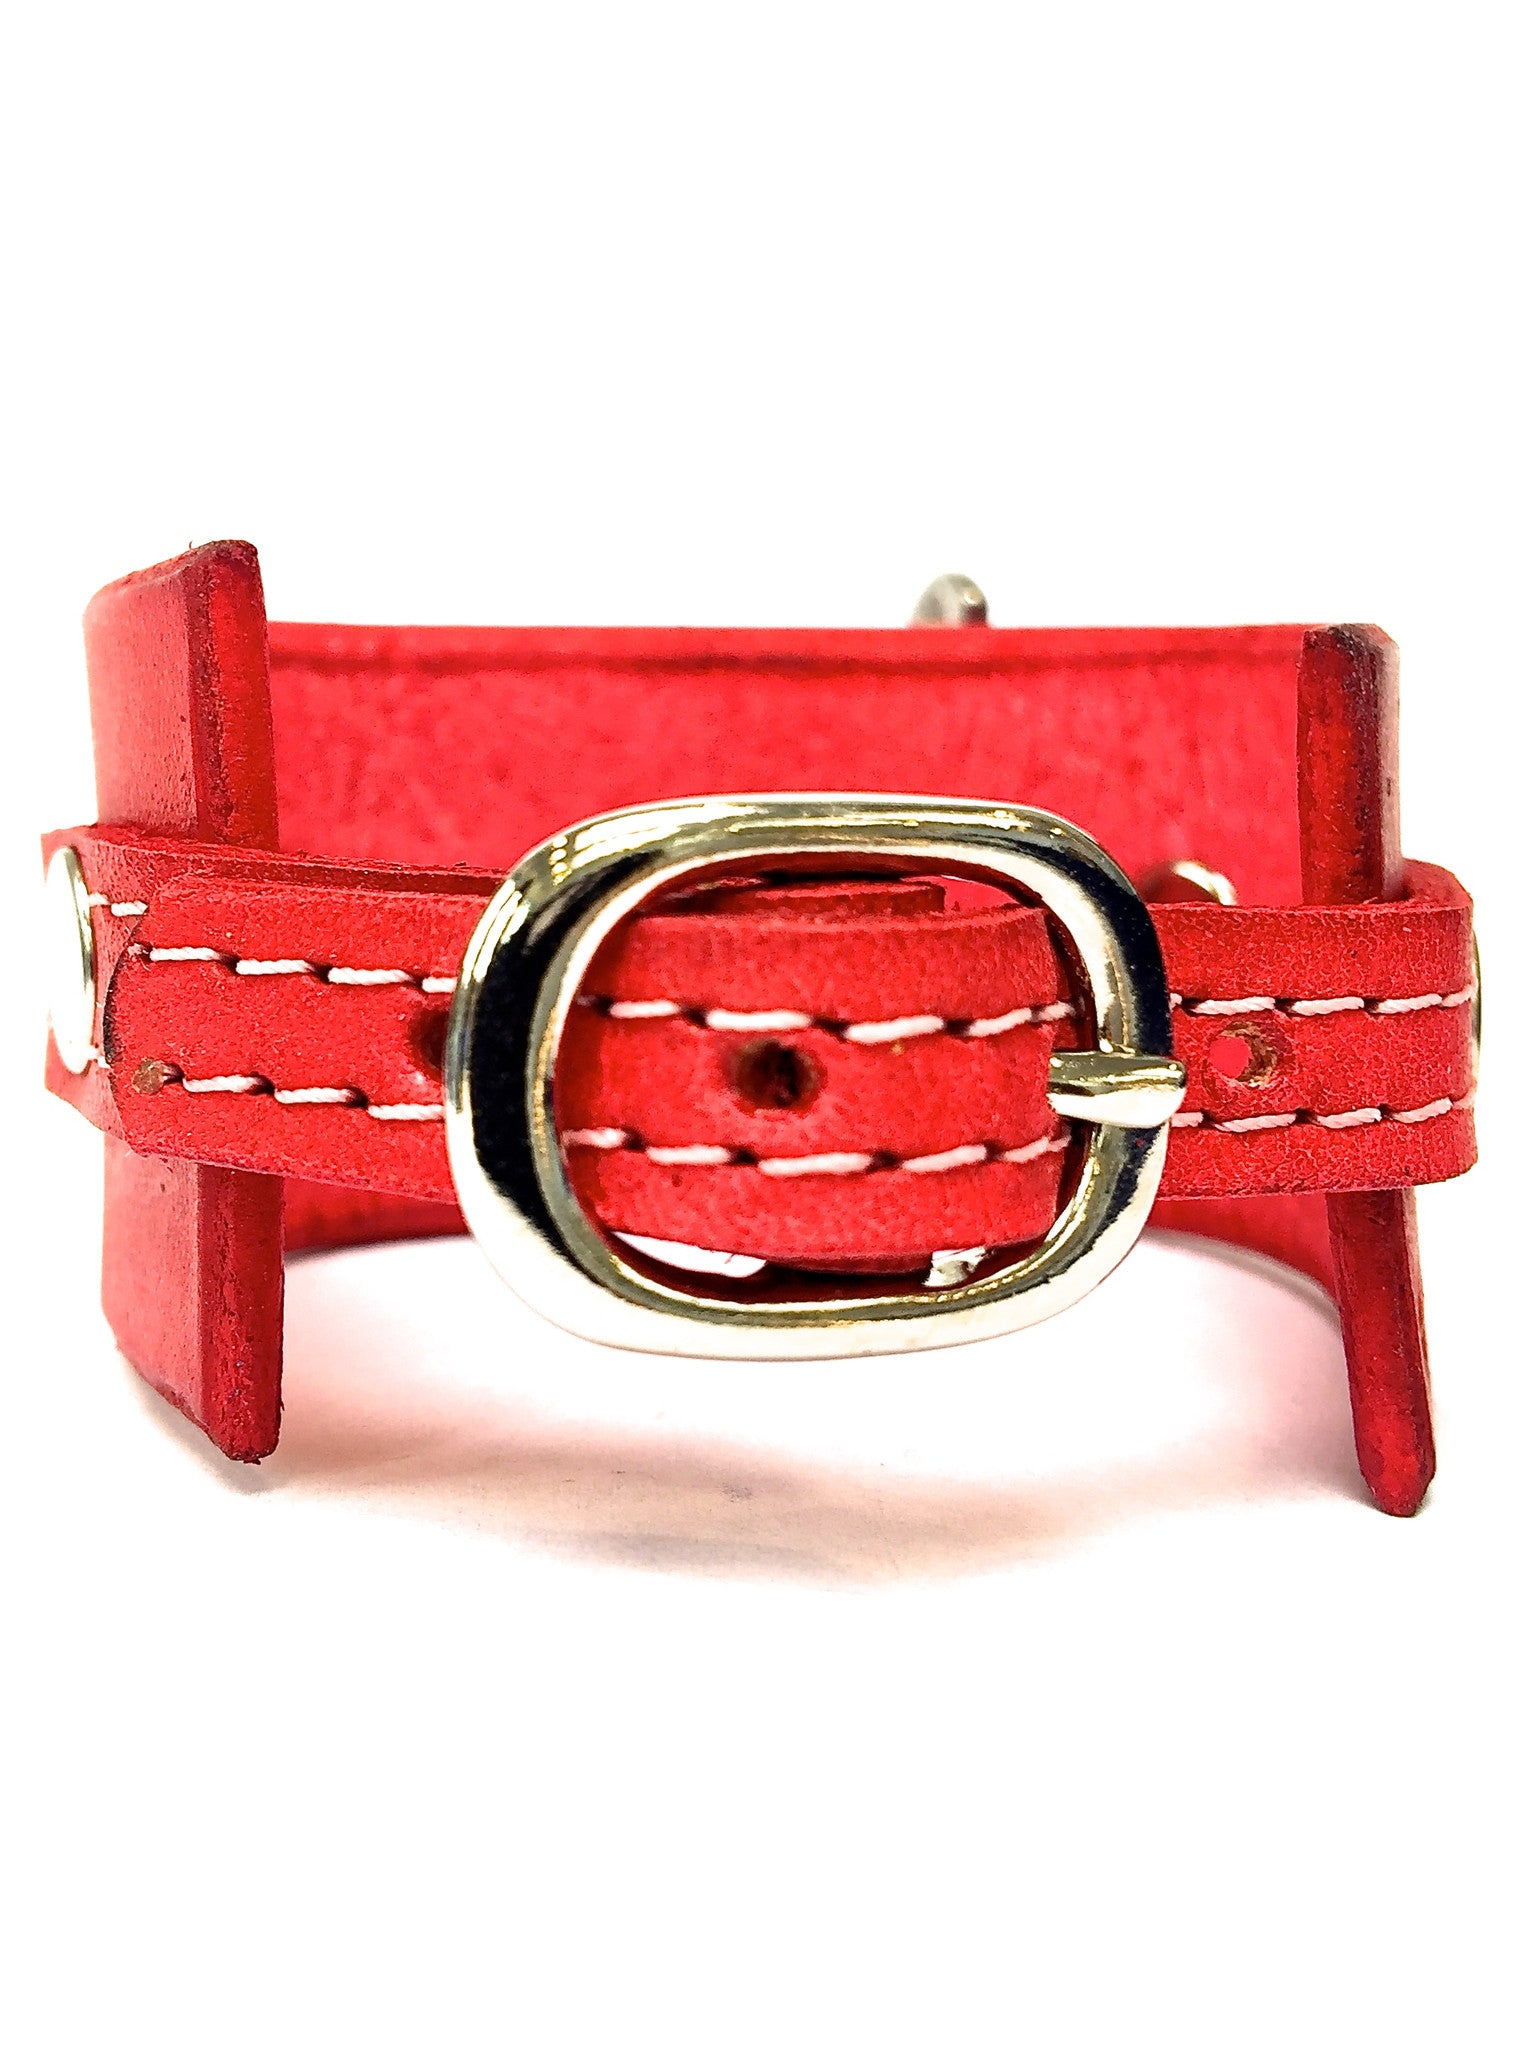 leather cuff with anchor shackle red by nyet jewelry.